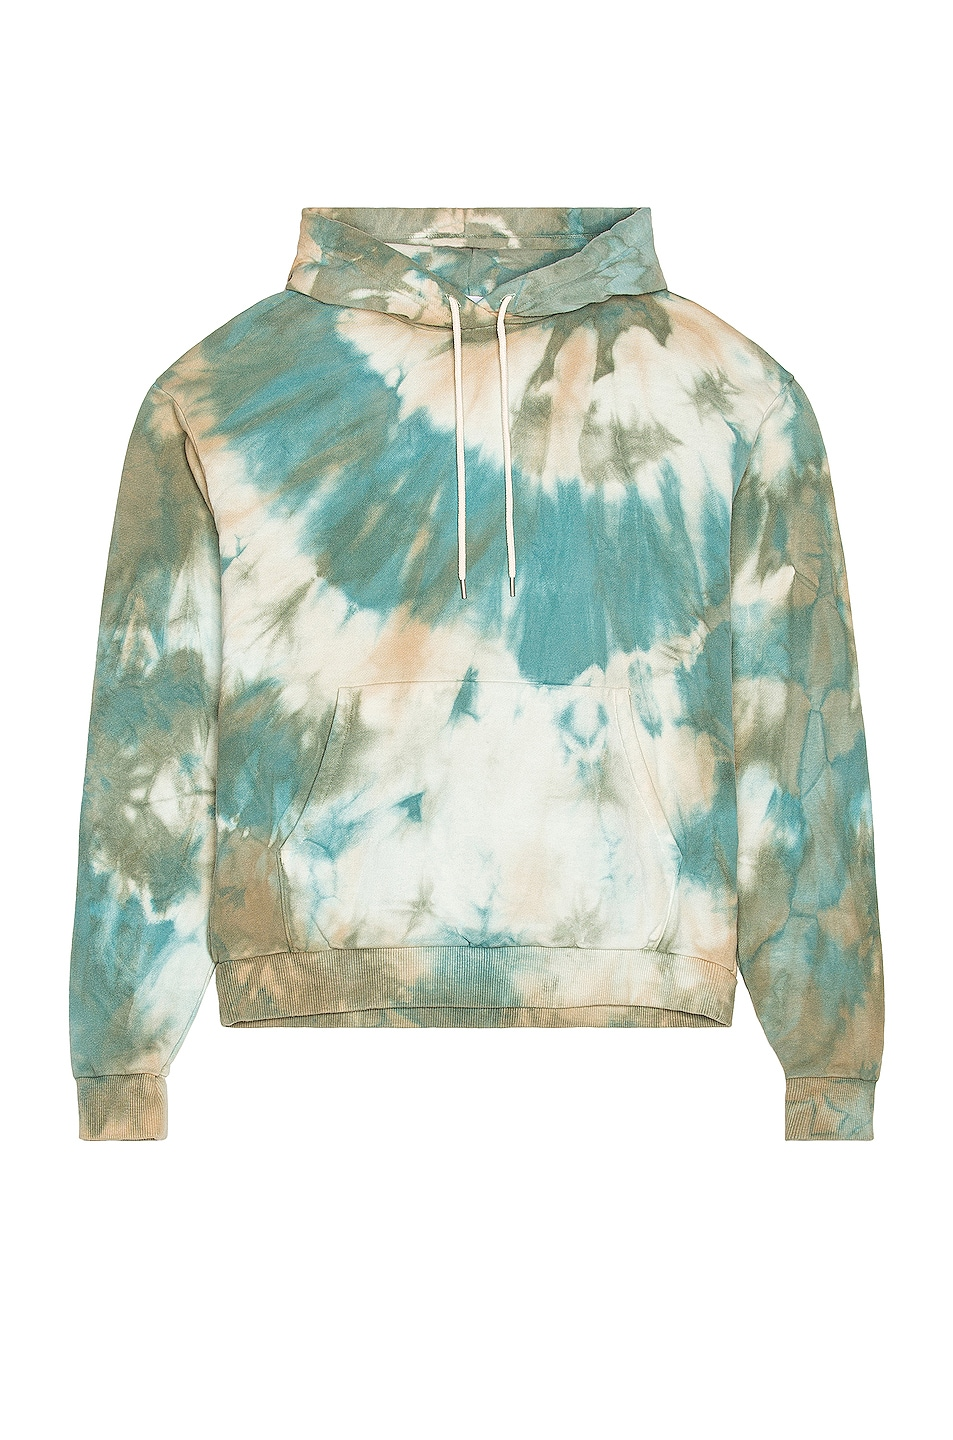 Image 1 of JOHN ELLIOTT Sequoia Hoodie in Sorrel Tie Dye